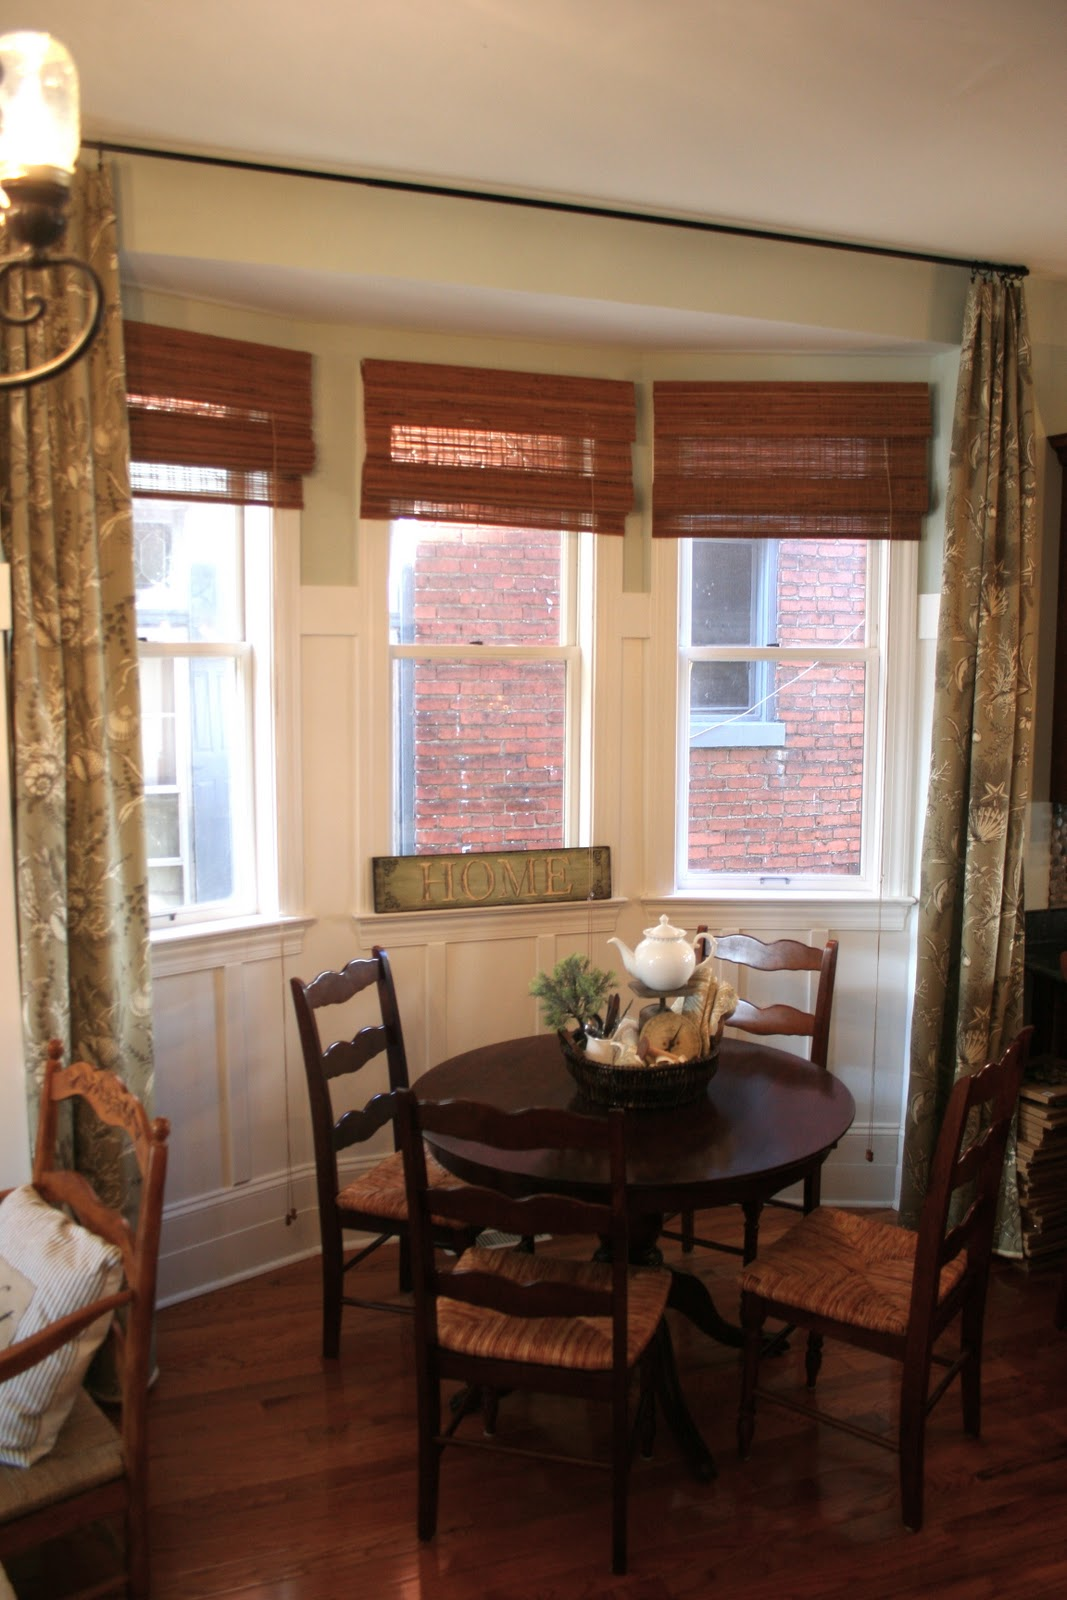 Breakfast Nook Curtains Curtain Panels For My Breakfast Nook How To Make Curtains